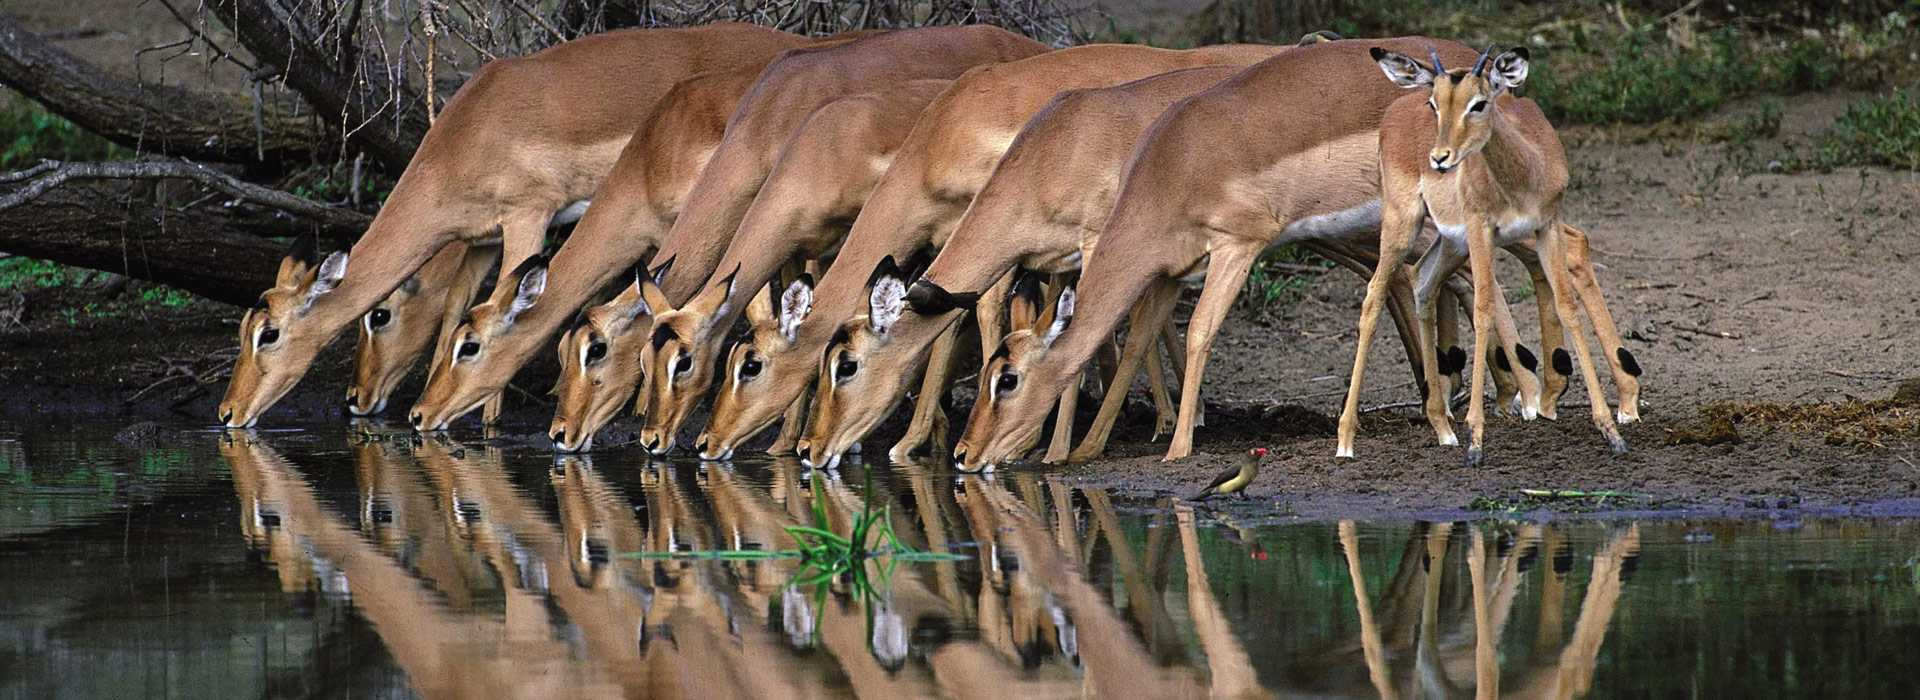 A Group Of Impala Quenching Their Thirst